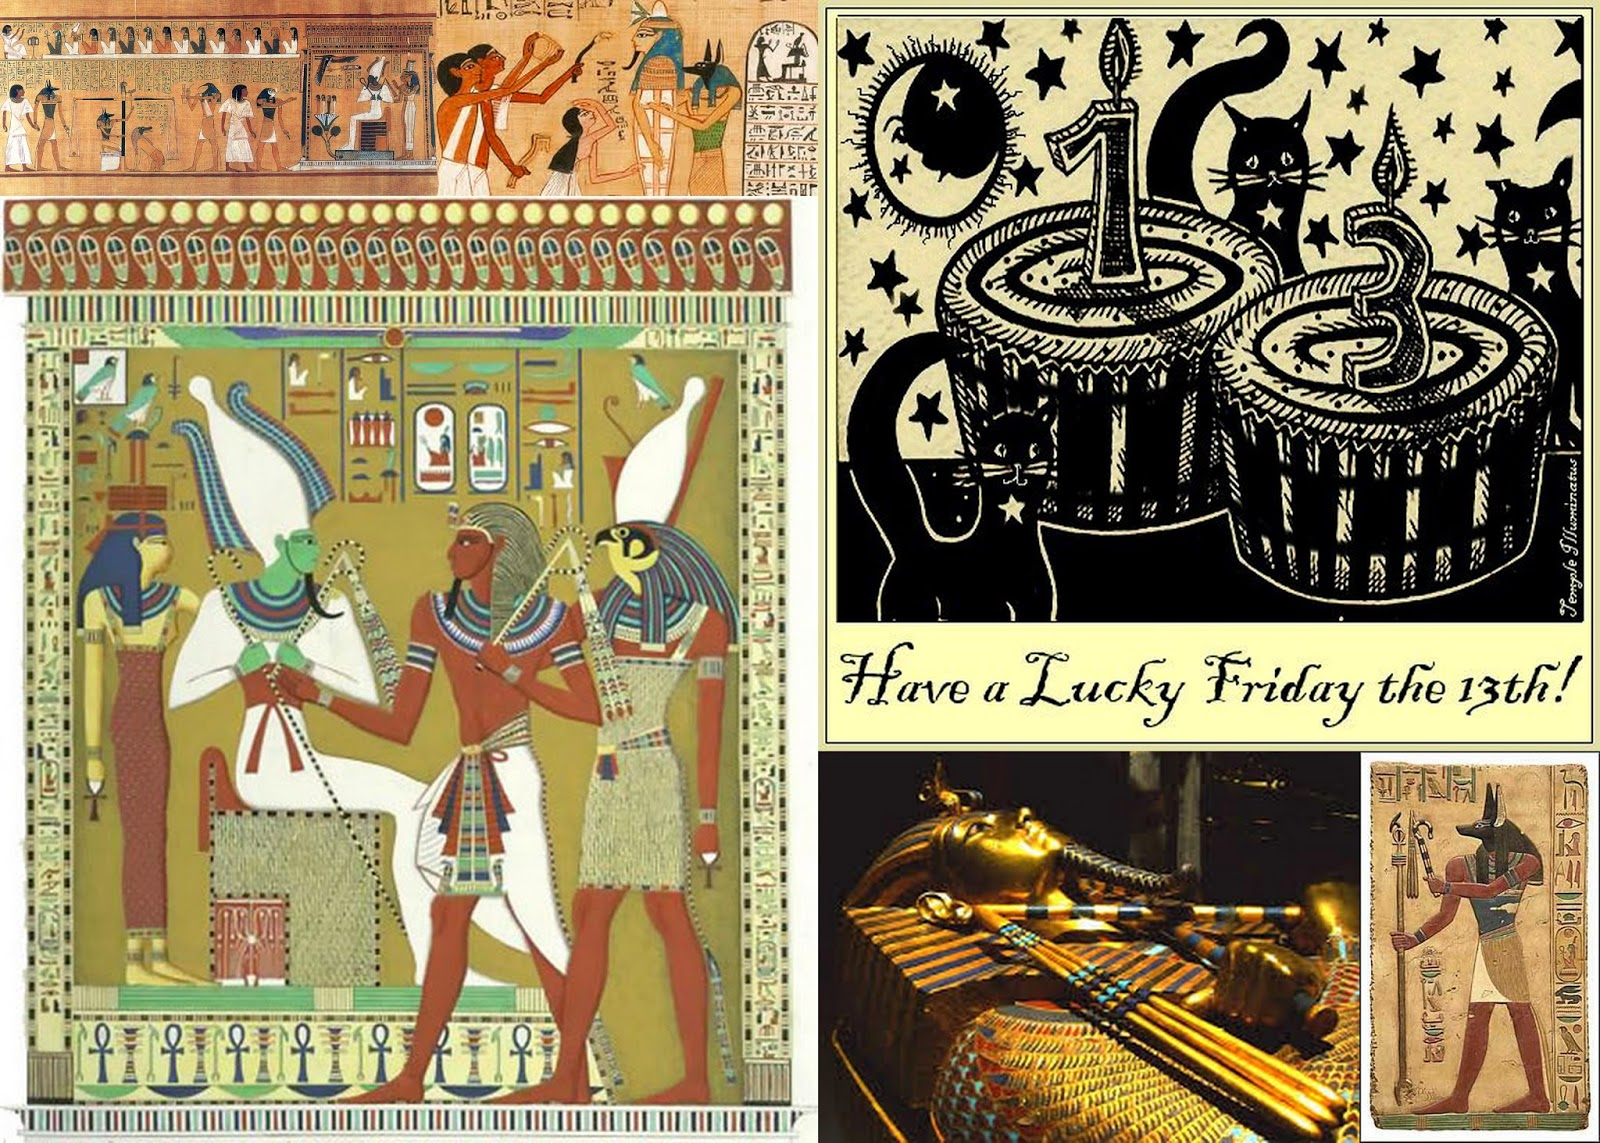 I should be writing: Friday the 13th and ancient Egypt